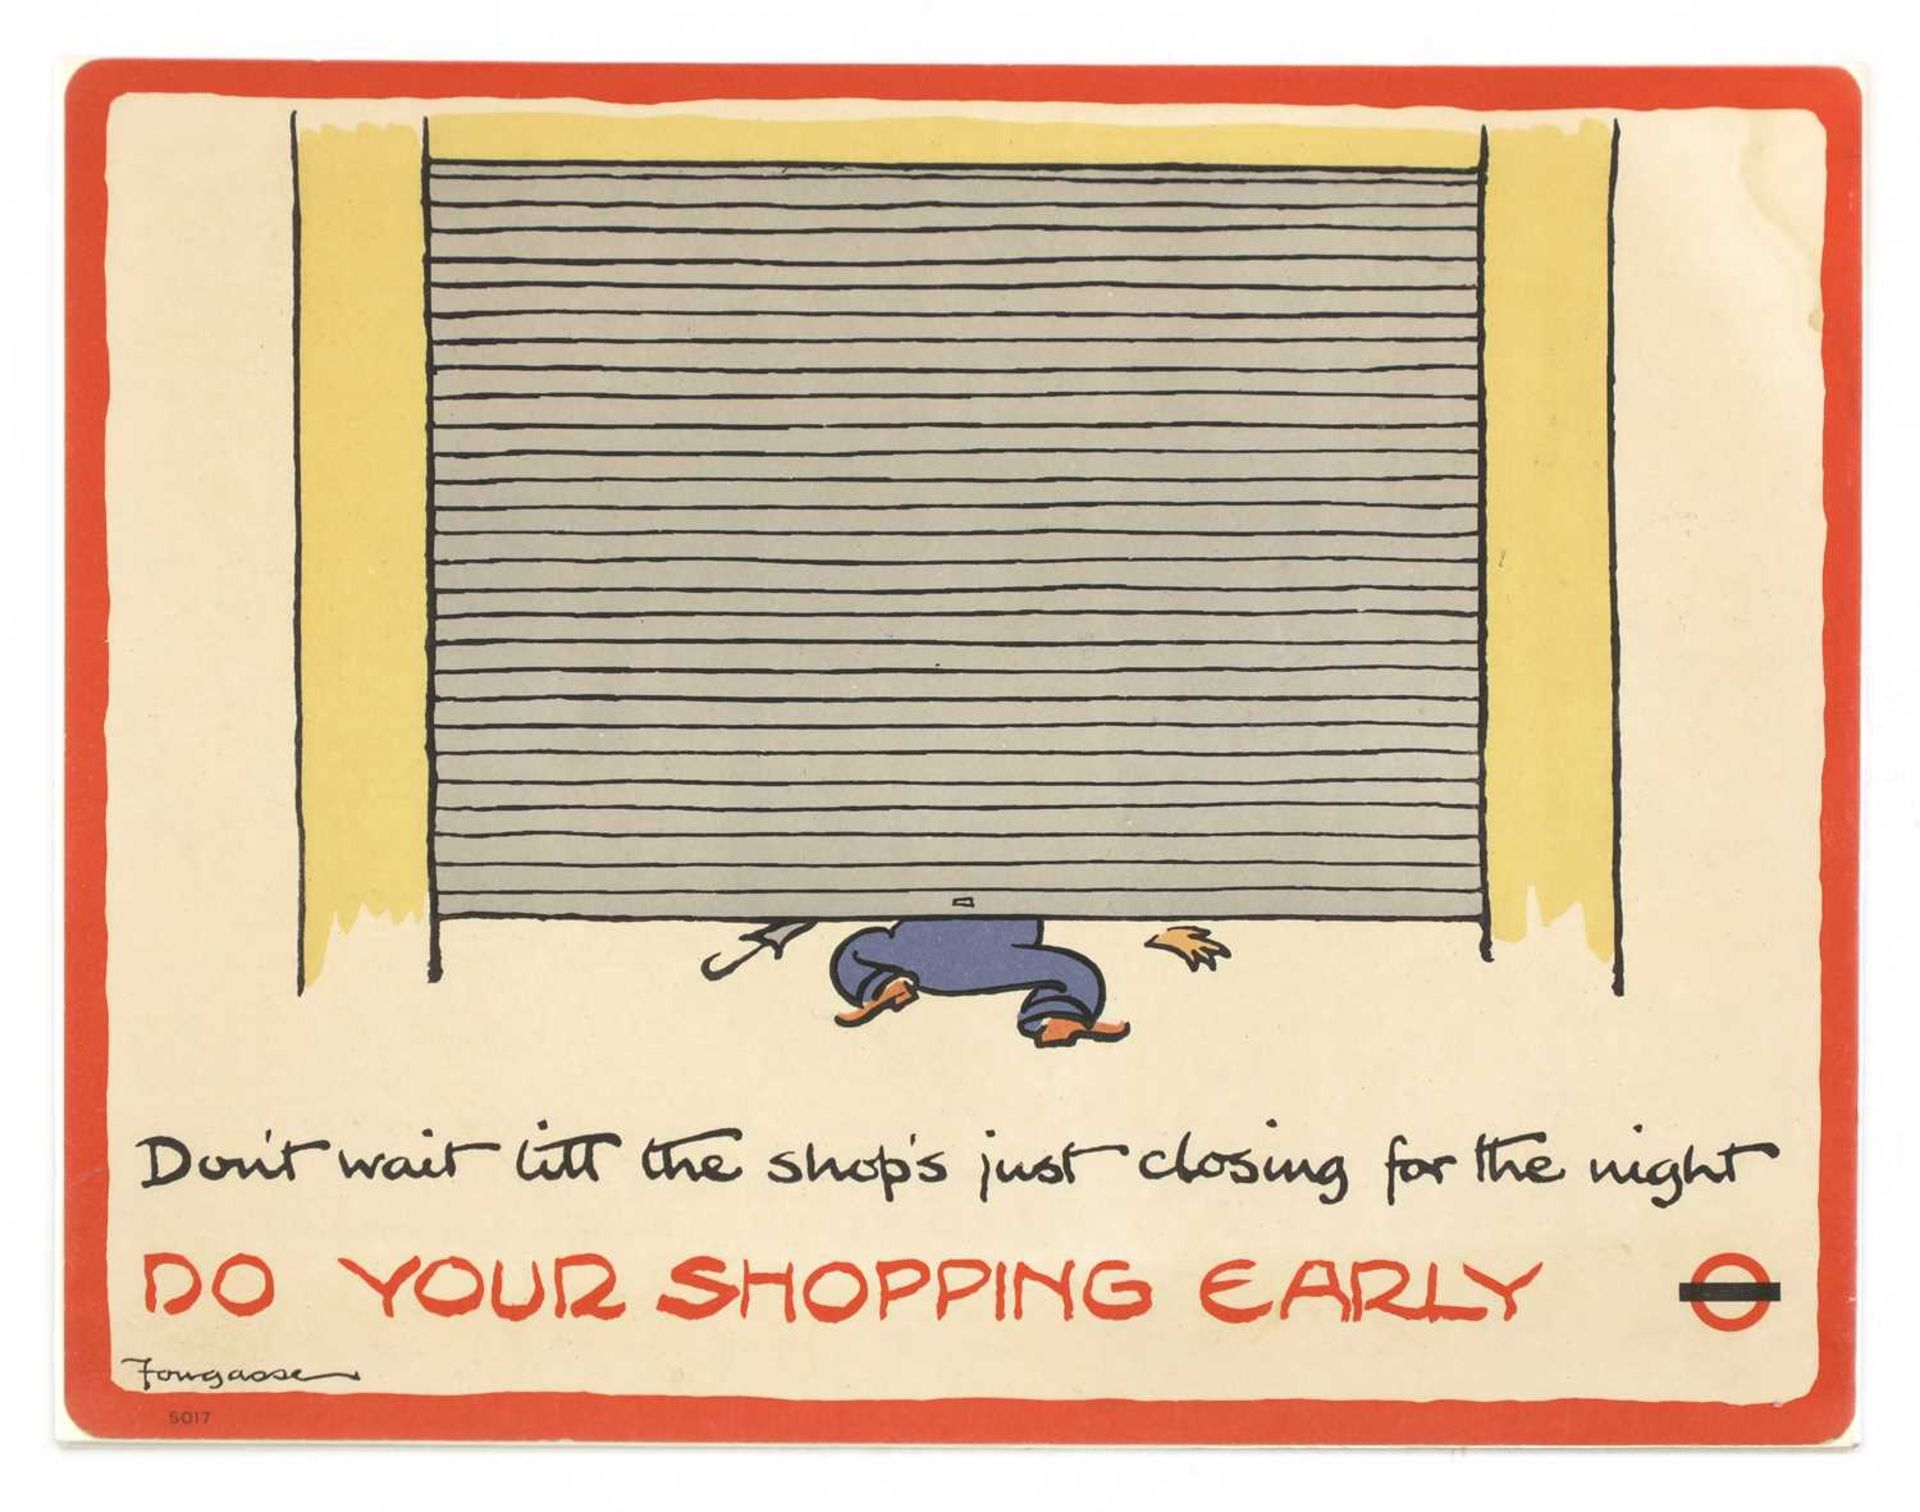 'DO YOUR SHOPPING EARLY'